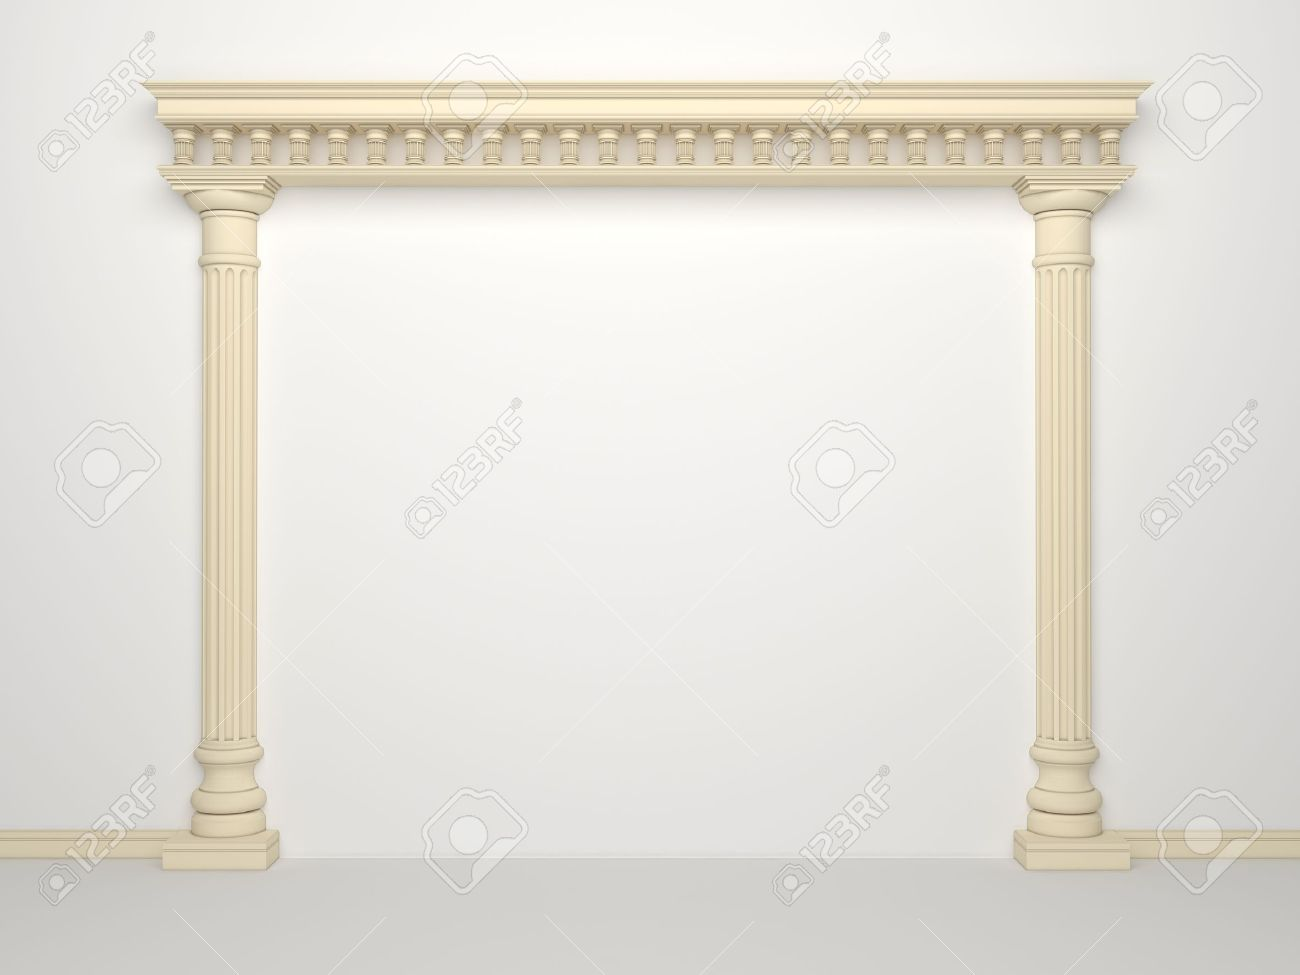 Classical Portal With Columns On A White Background Stock Photo 1300x975